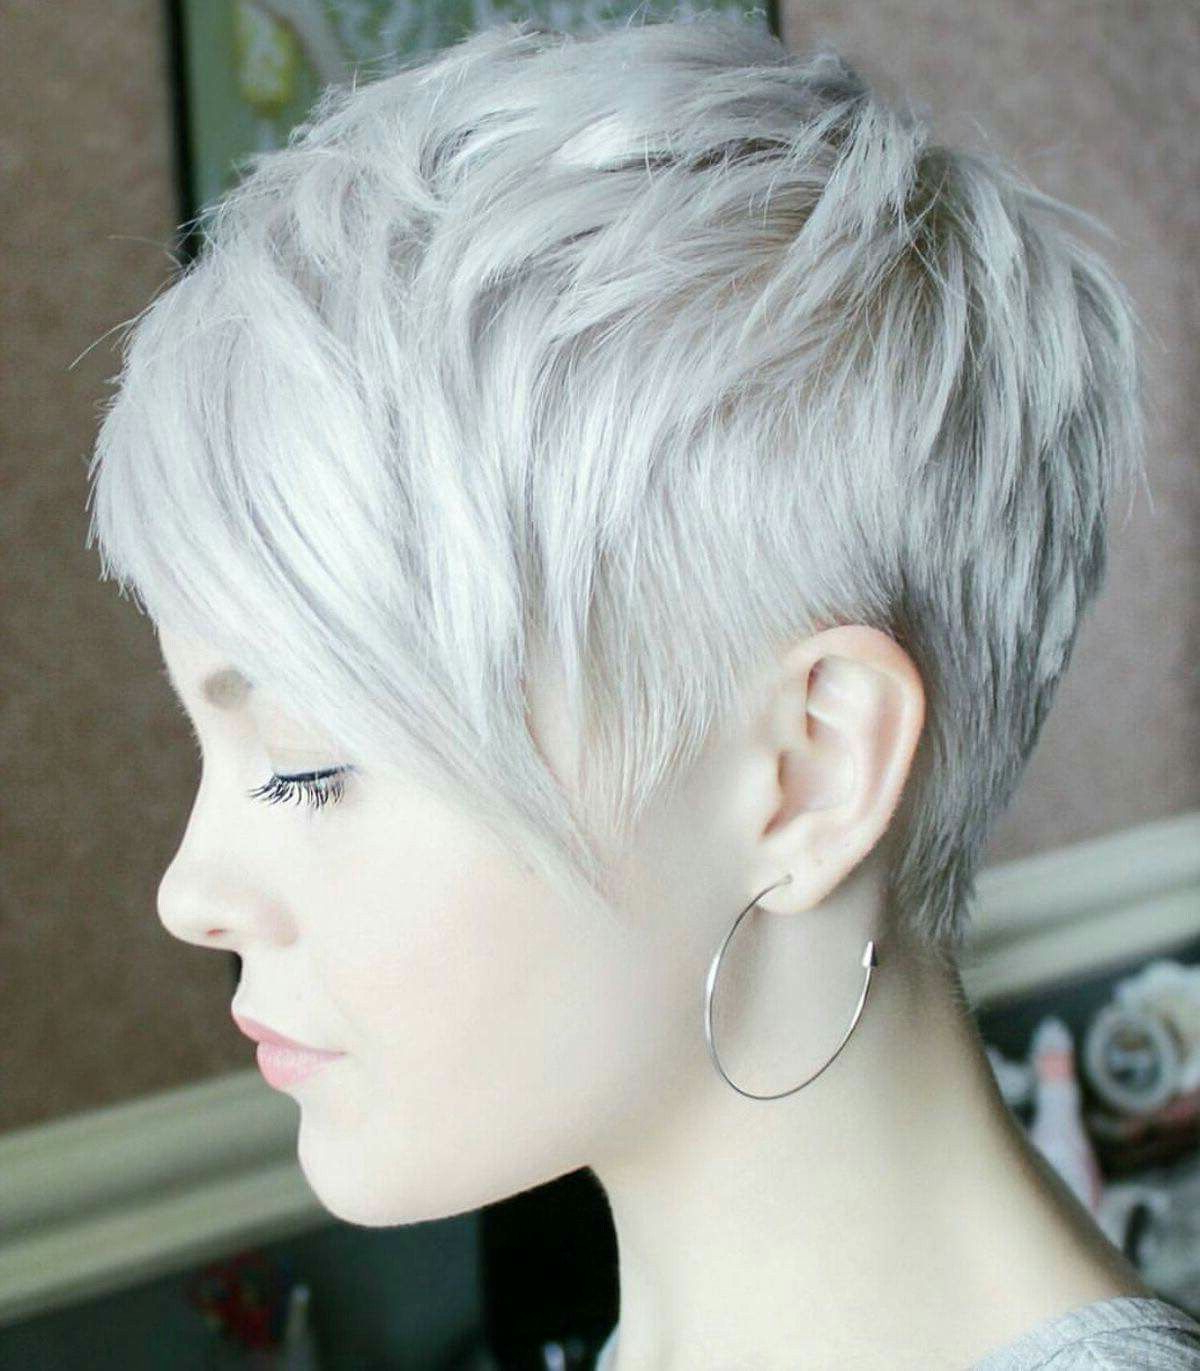 60 Awesome Pixie Haircut For Thick Hair 39 | Hairstyles For Little Regarding Gray Pixie Hairstyles For Thick Hair (View 12 of 20)